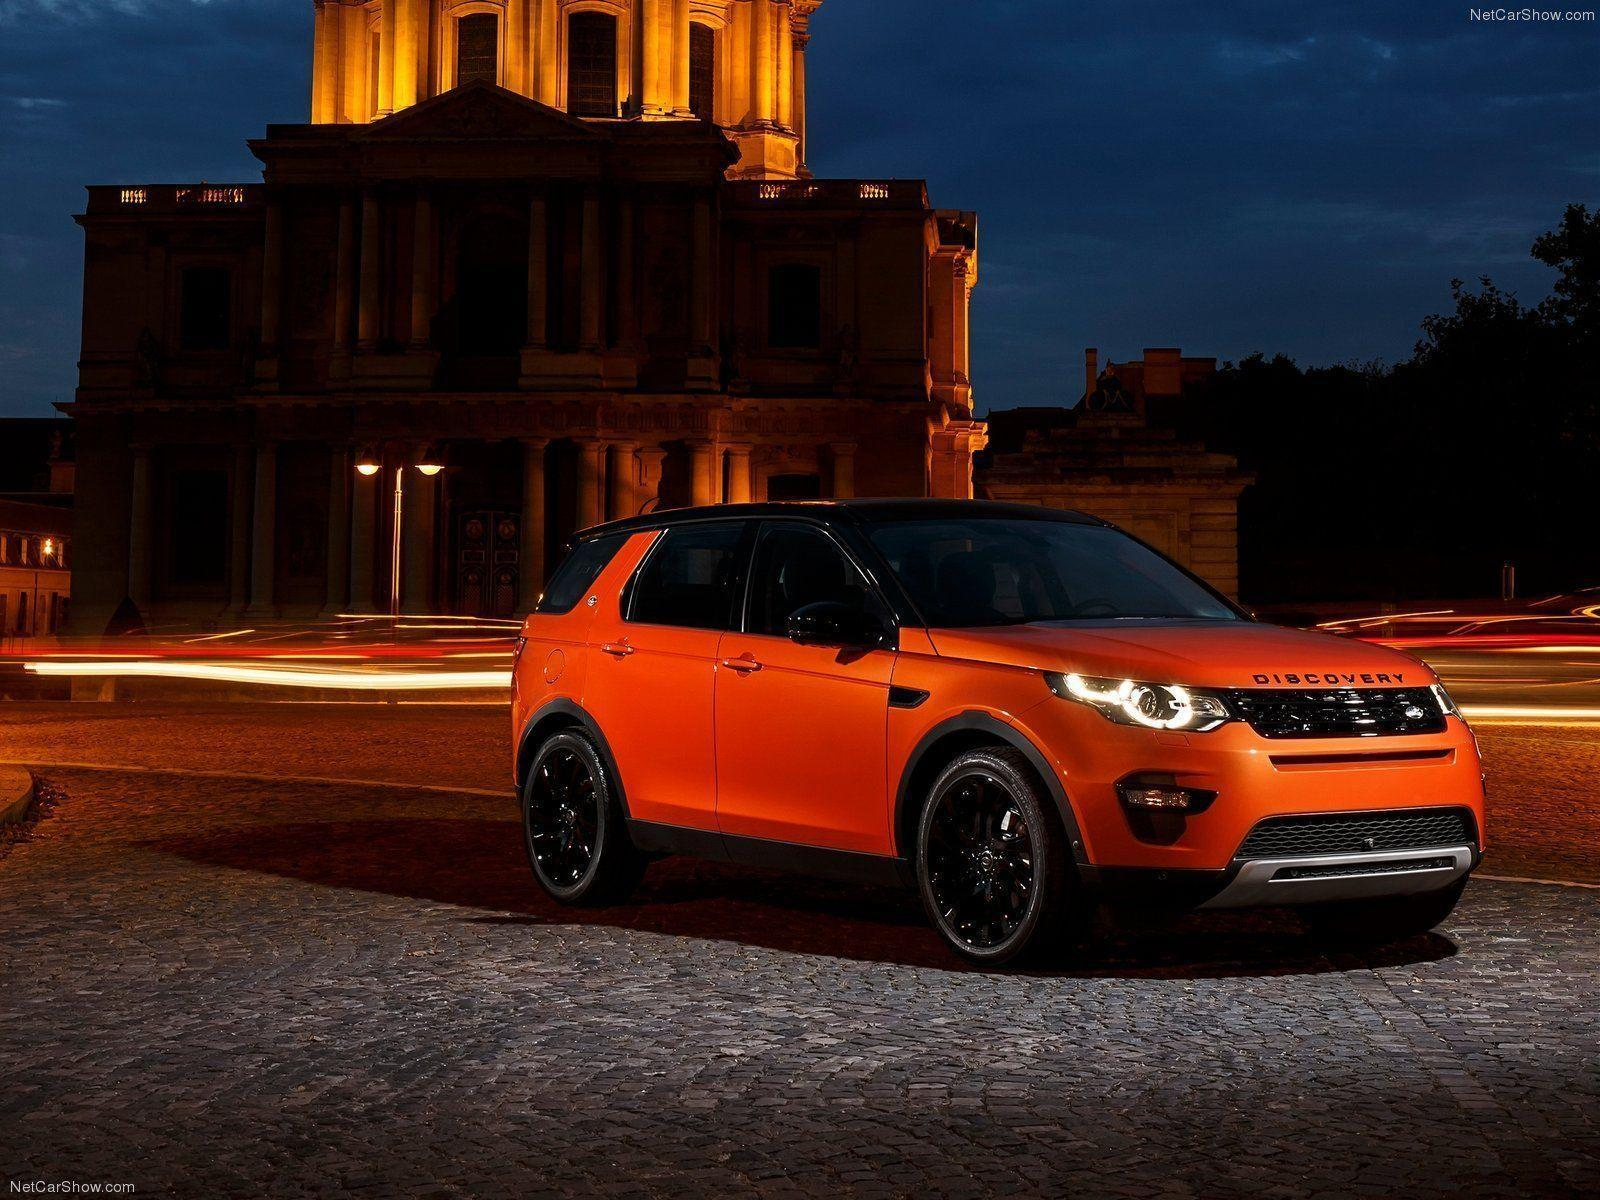 Discovery Sport Wallpaper Android: Range Rover Sport 2015 Desktop Wallpapers 1600x1200